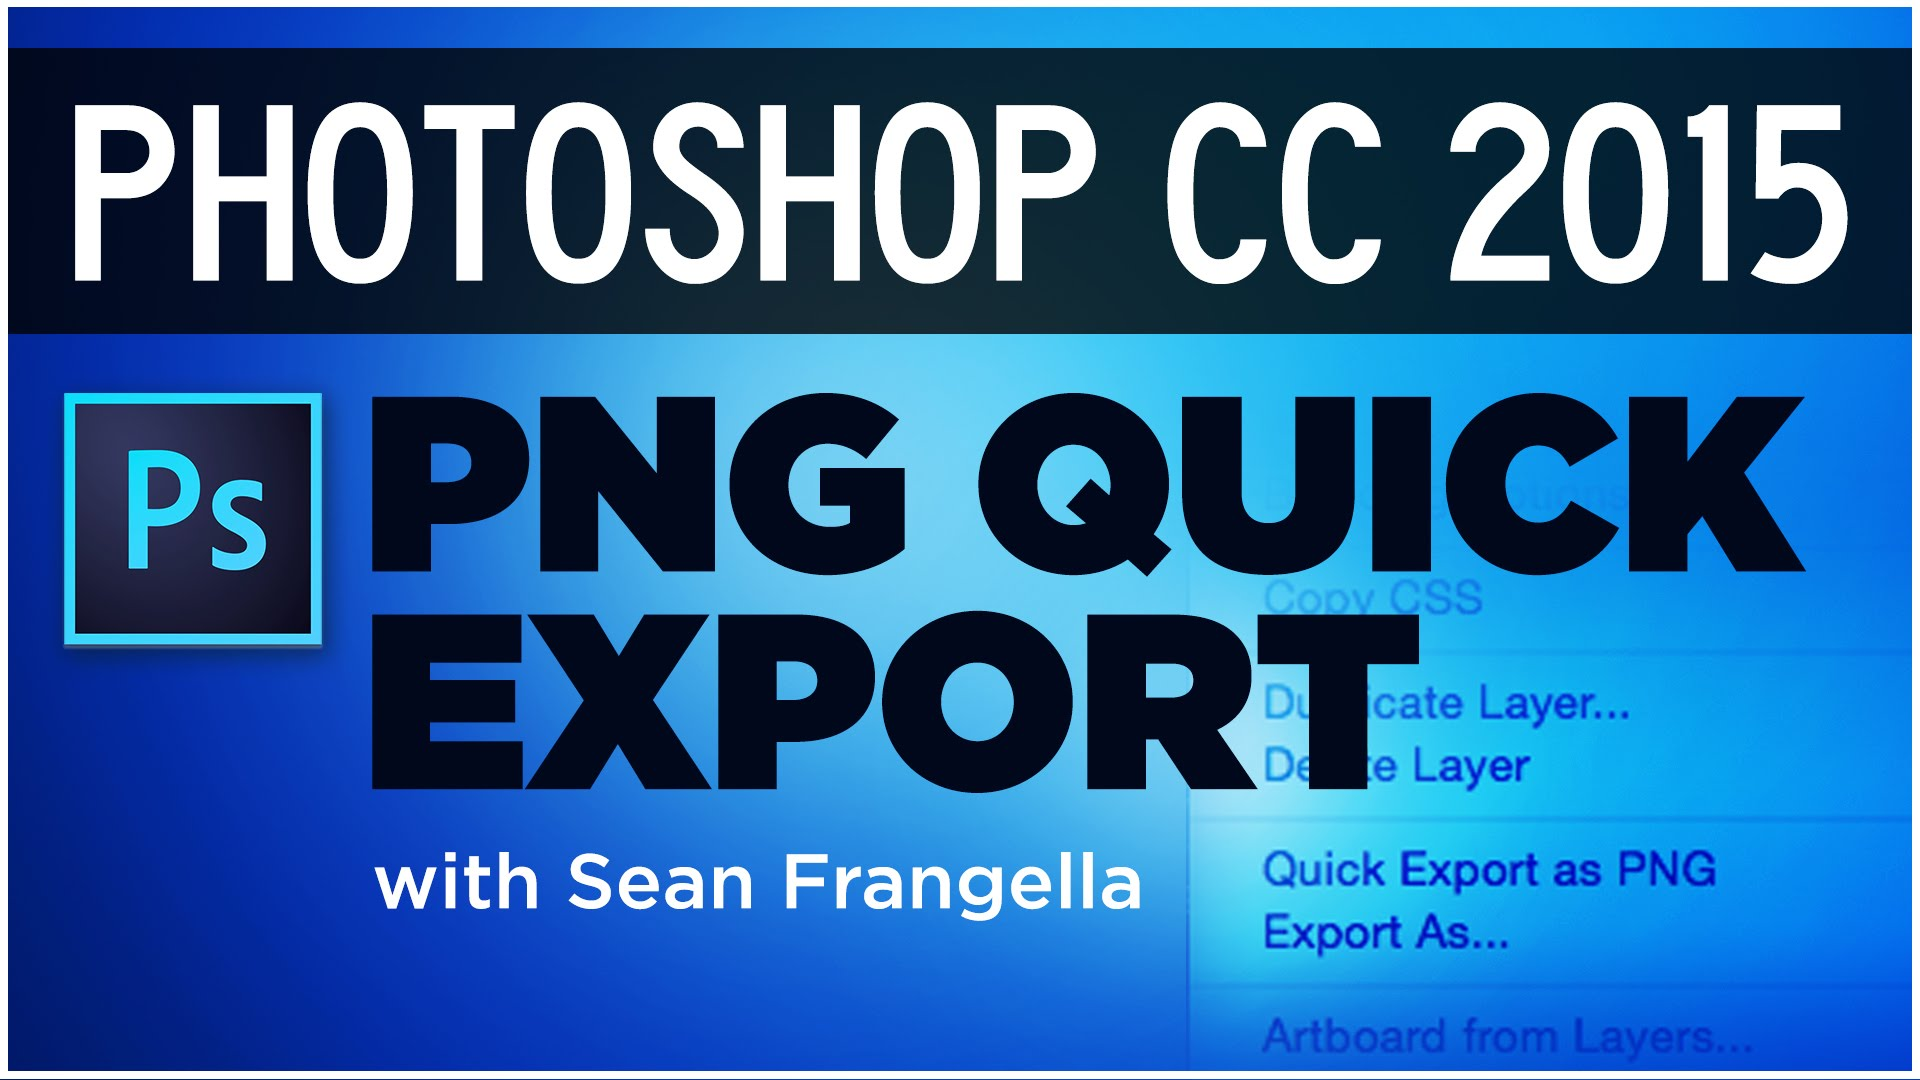 Photoshop CC 2015 Tutorial - New Quick Export to PNG Feature - Sean  Frangella - Photoshop PNG